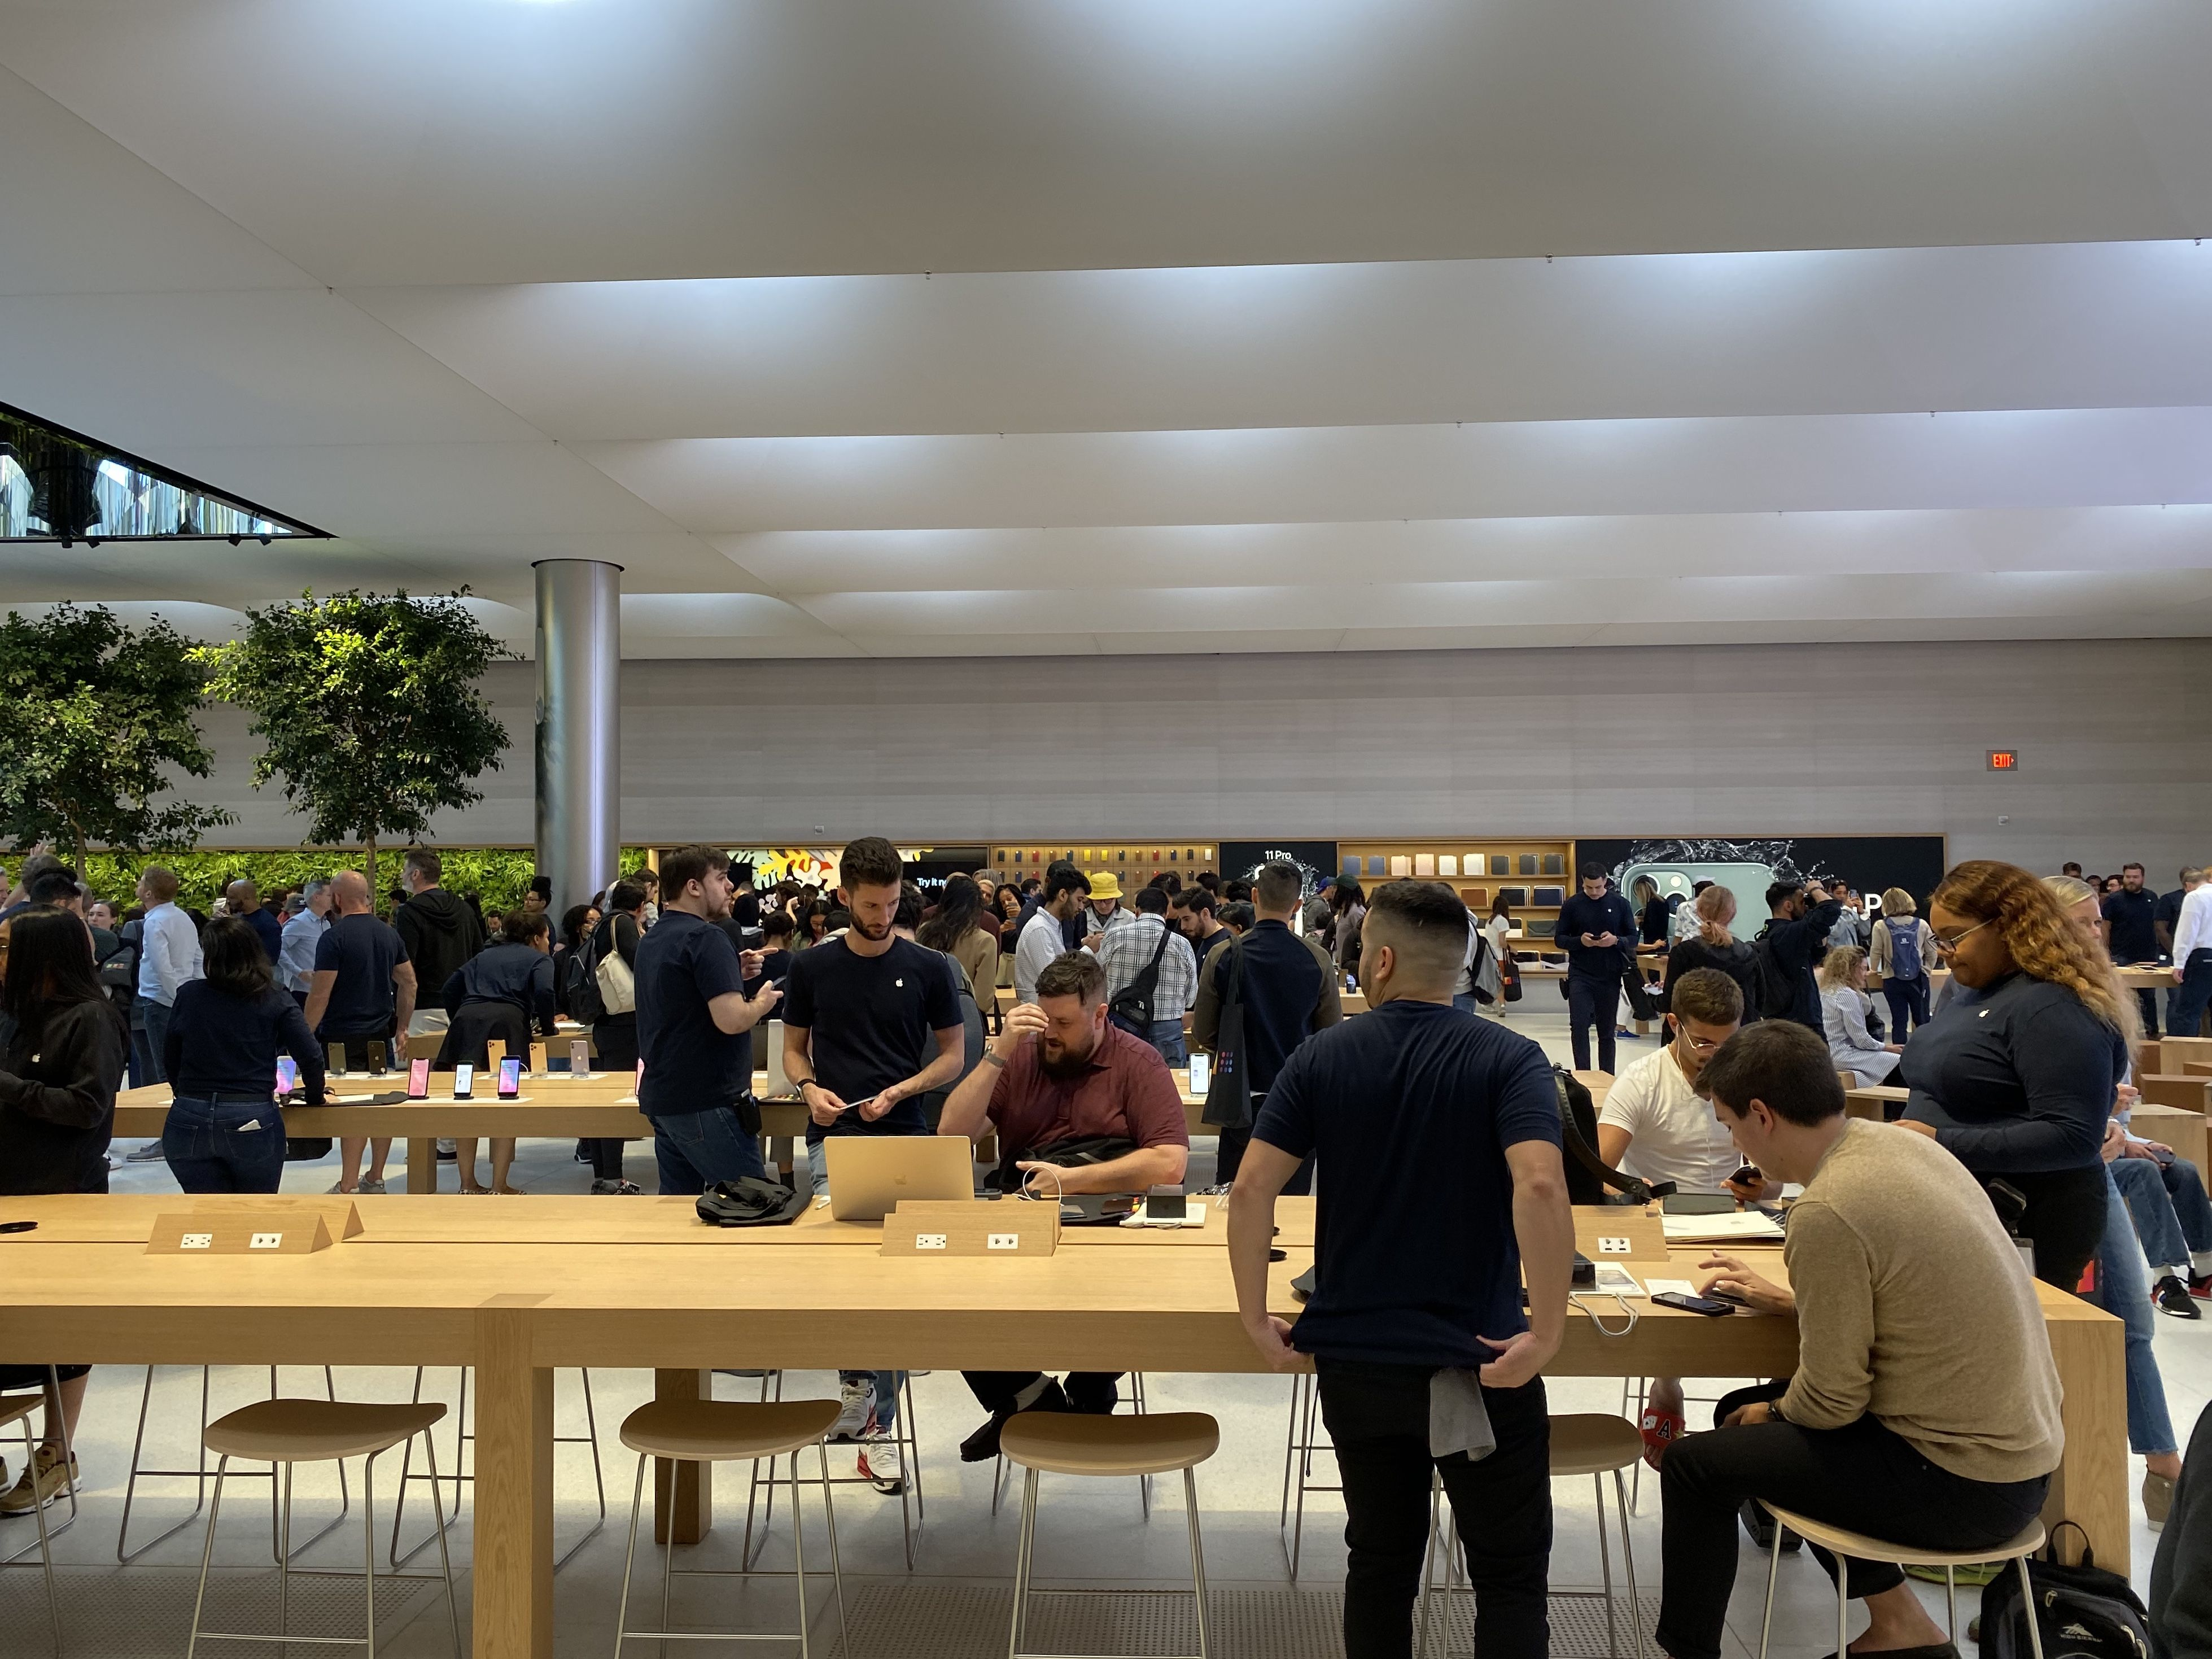 Apple retail staff doing their thing.